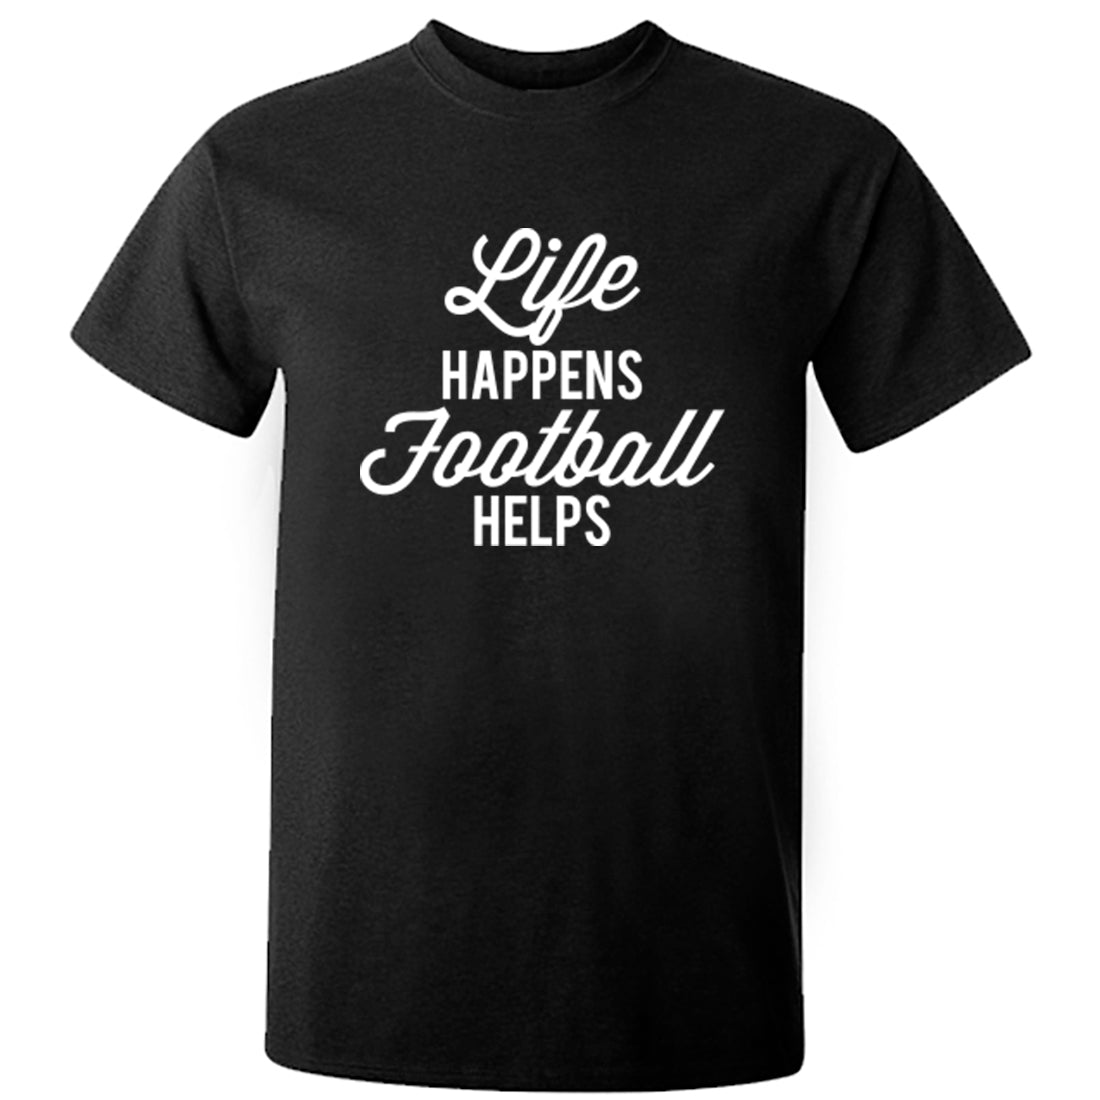 Life Happens Football Helps Unisex Fit T-Shirt K2536 - Illustrated Identity Ltd.